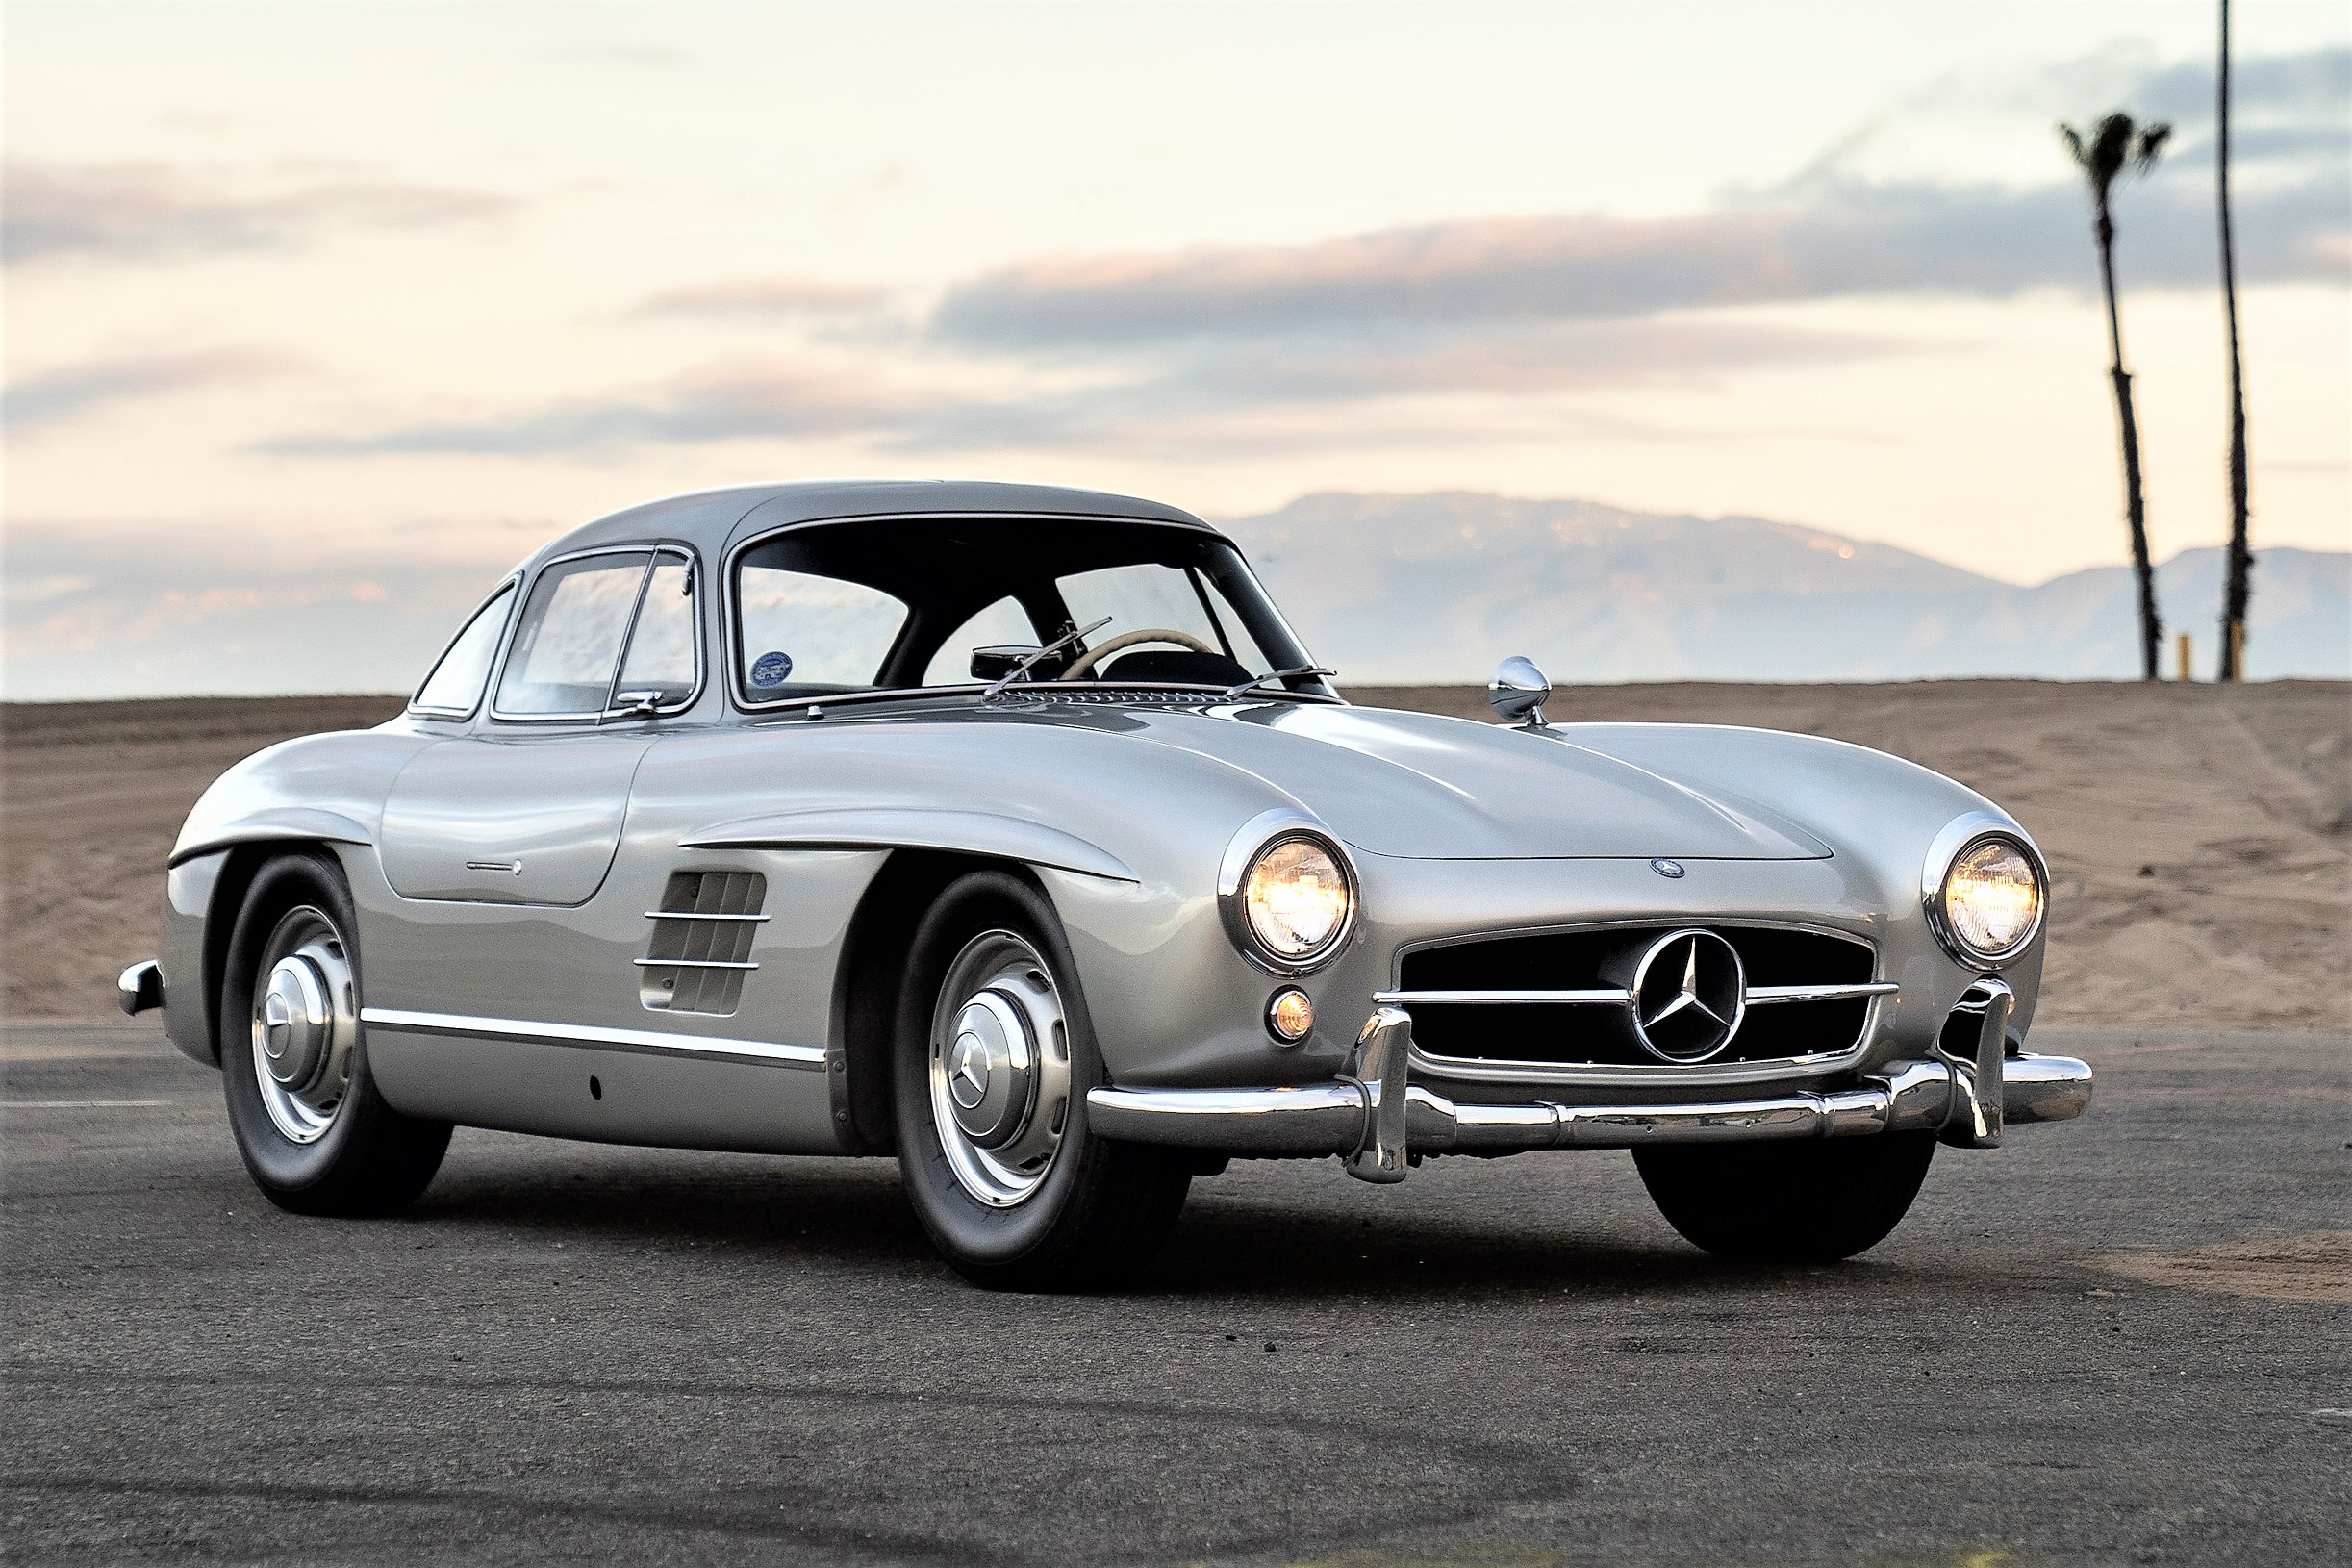 rock star adam levine s 300 sl gullwing set for rm auctions sale. Black Bedroom Furniture Sets. Home Design Ideas